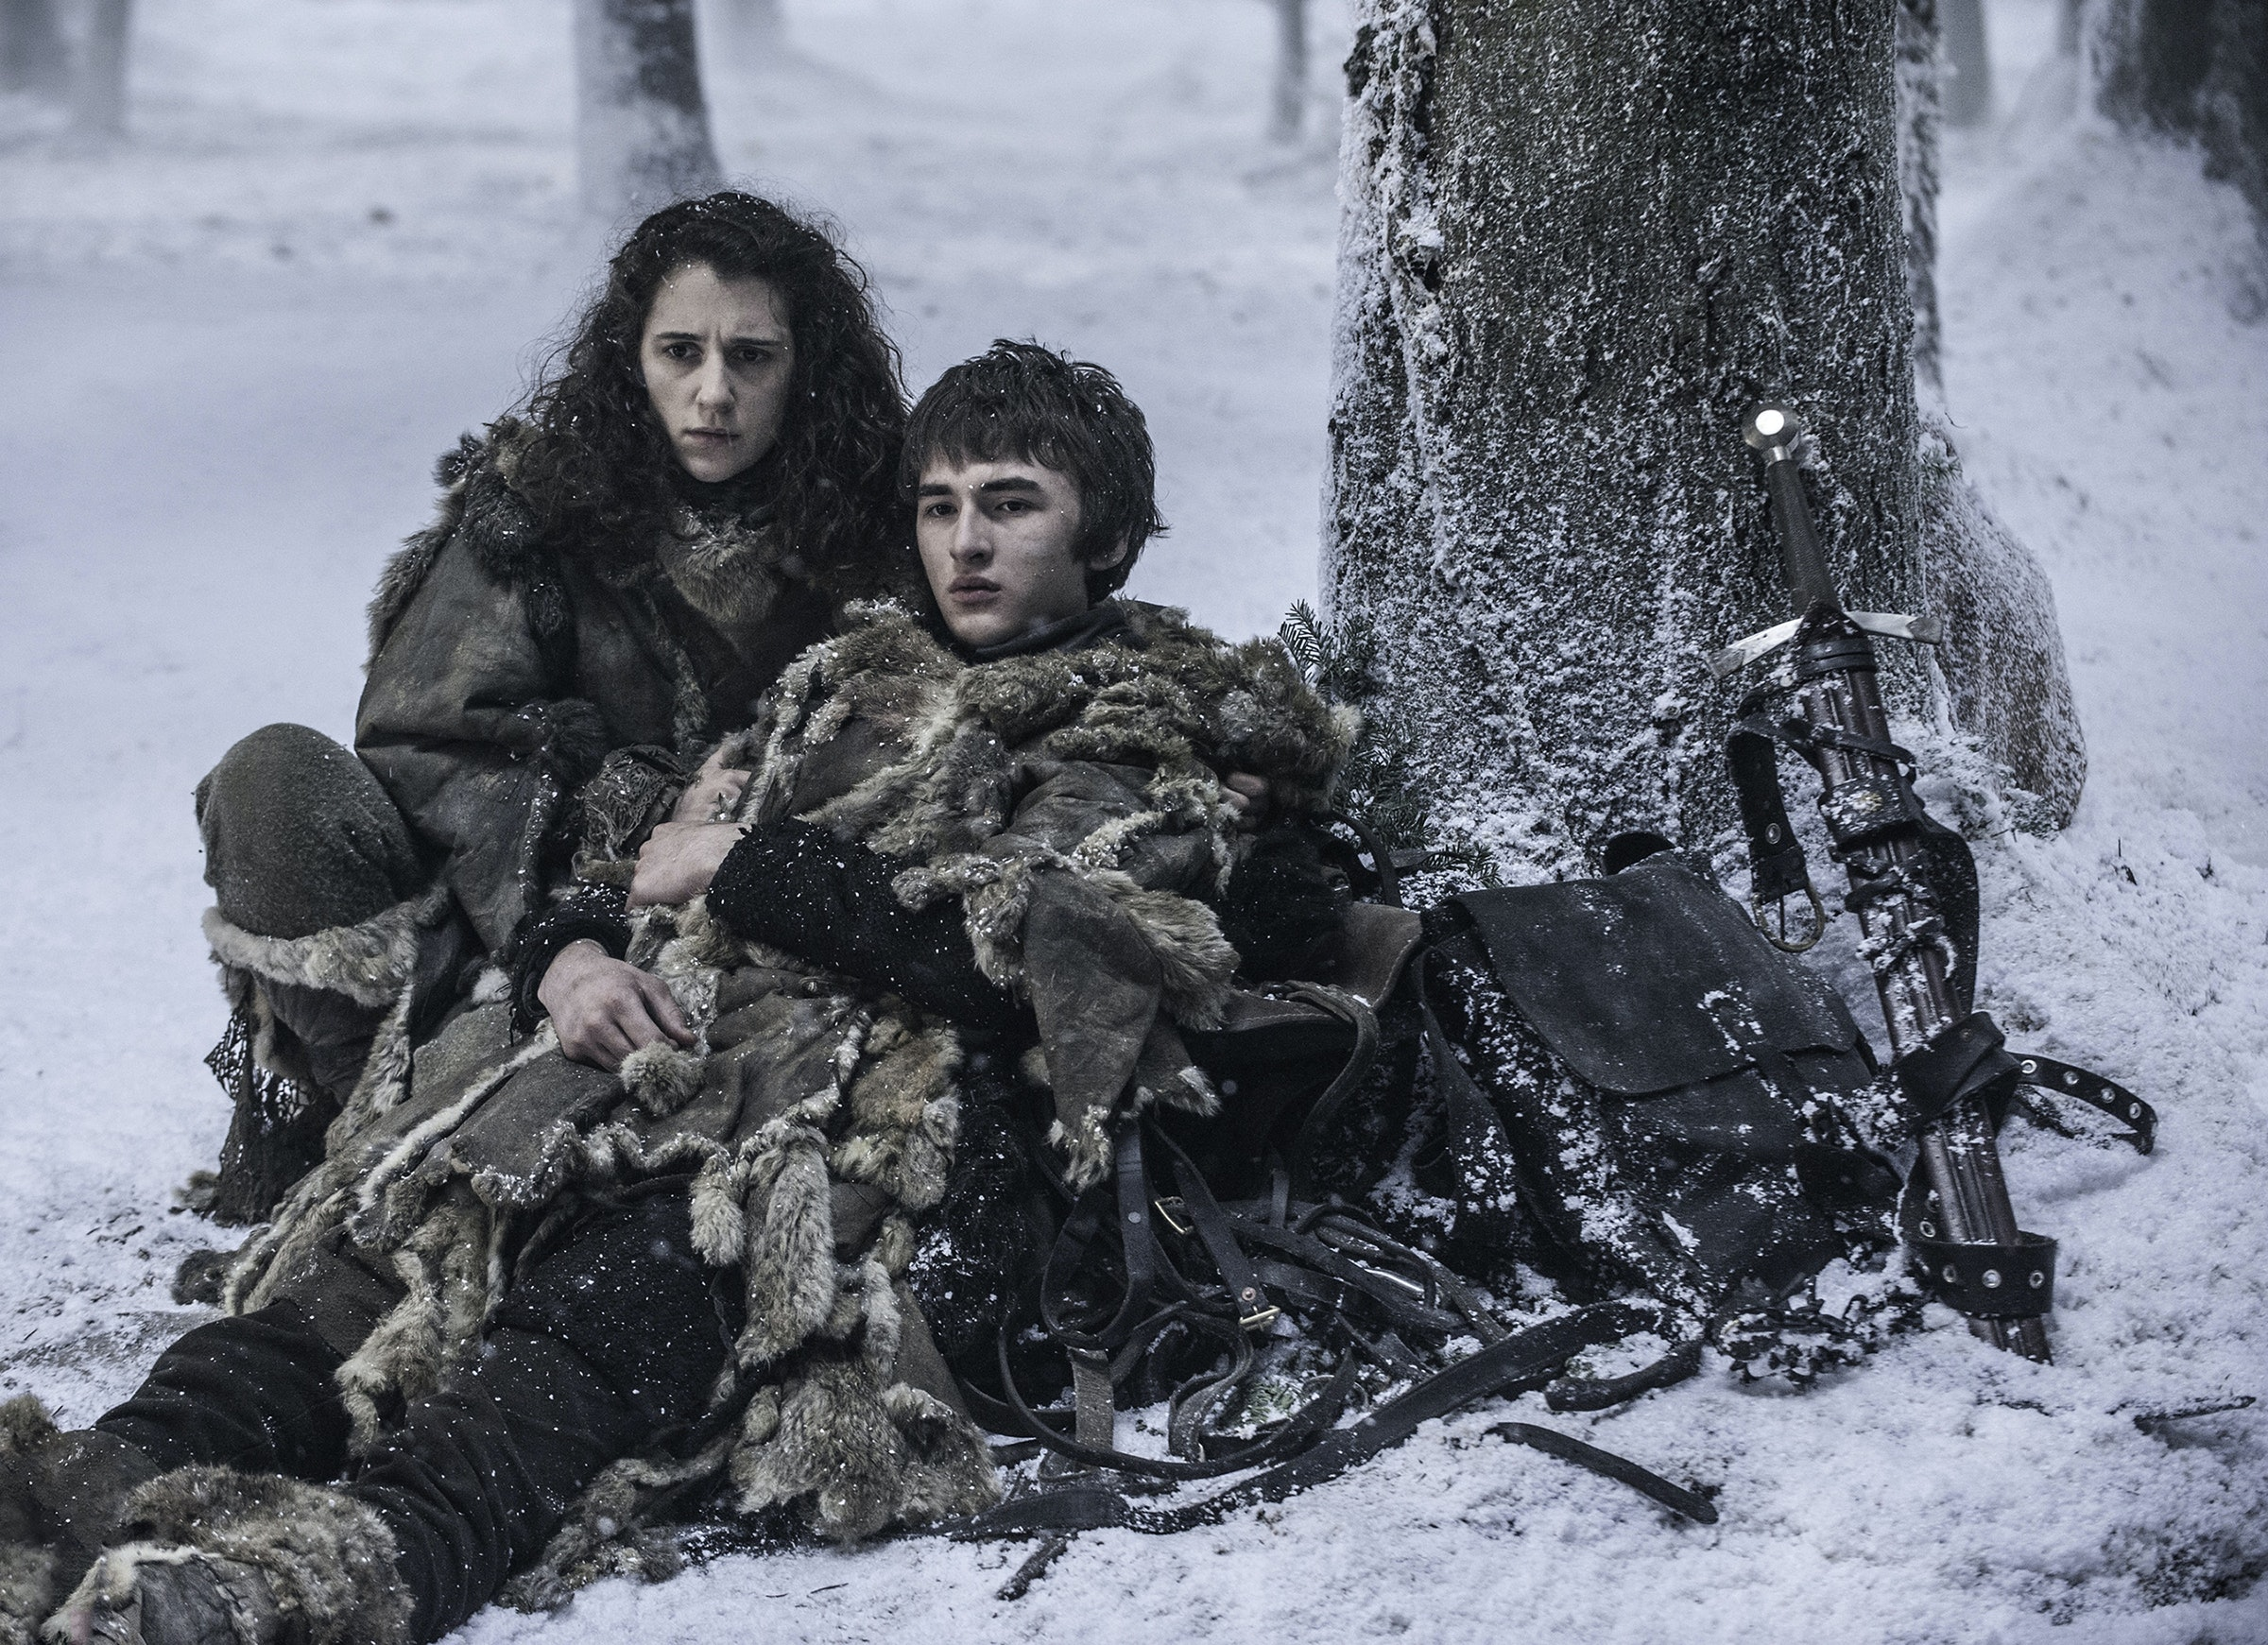 Clues In Bran's Mad King Vision On 'Game Of Thrones' Hint At